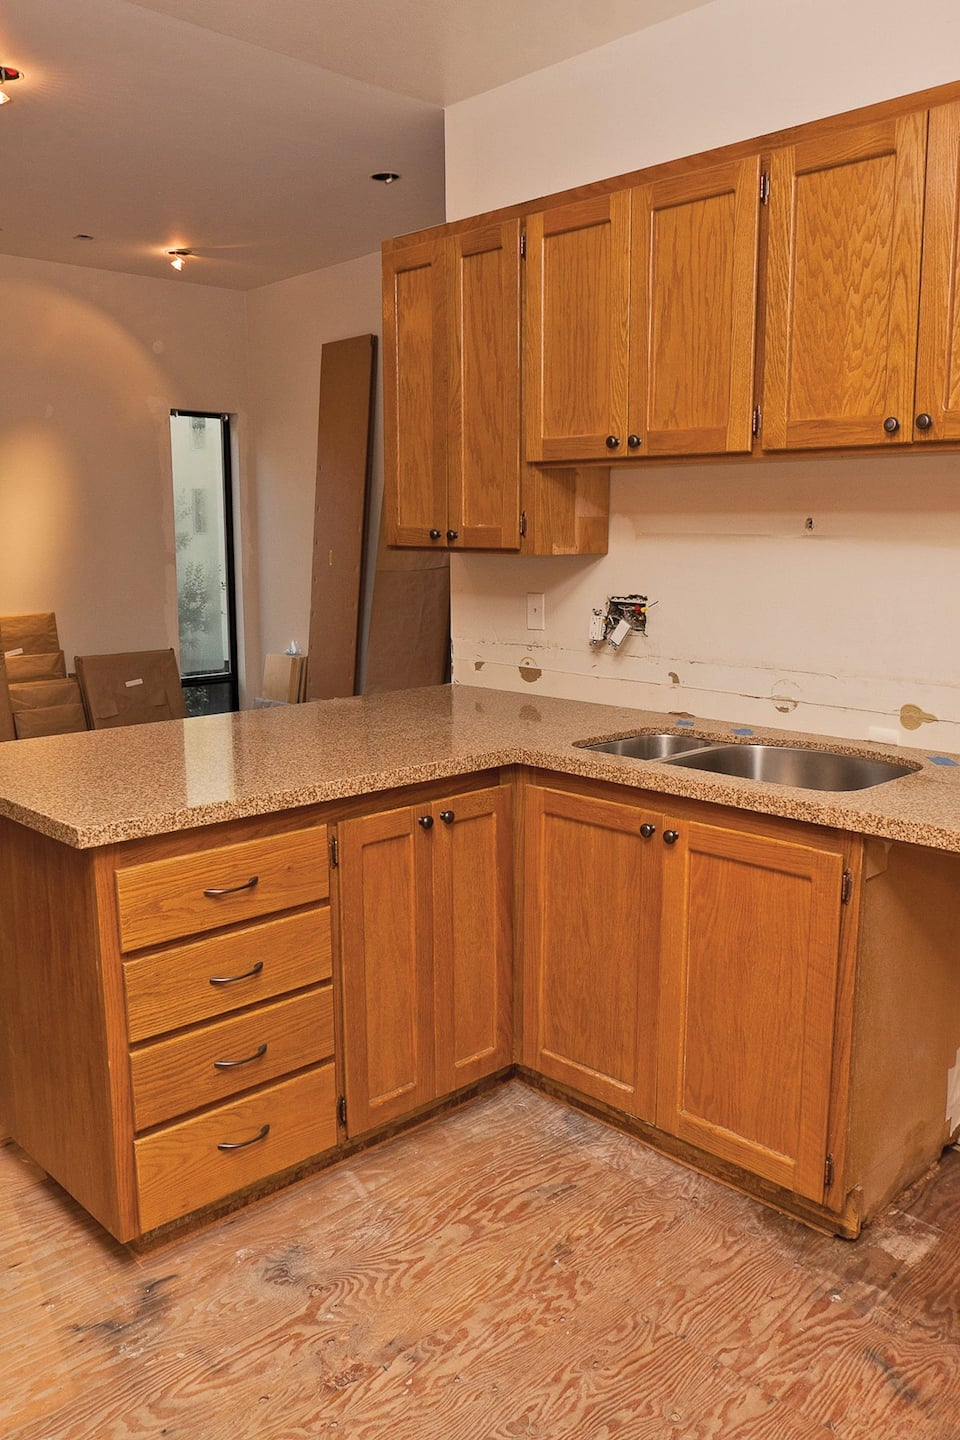 existing cabinets can be resurfaced and made new